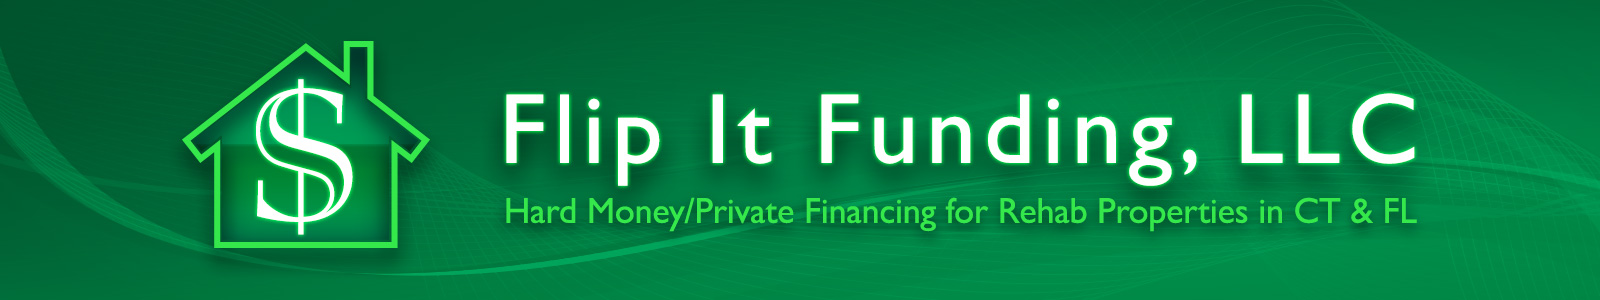 Flip It Funding Logo